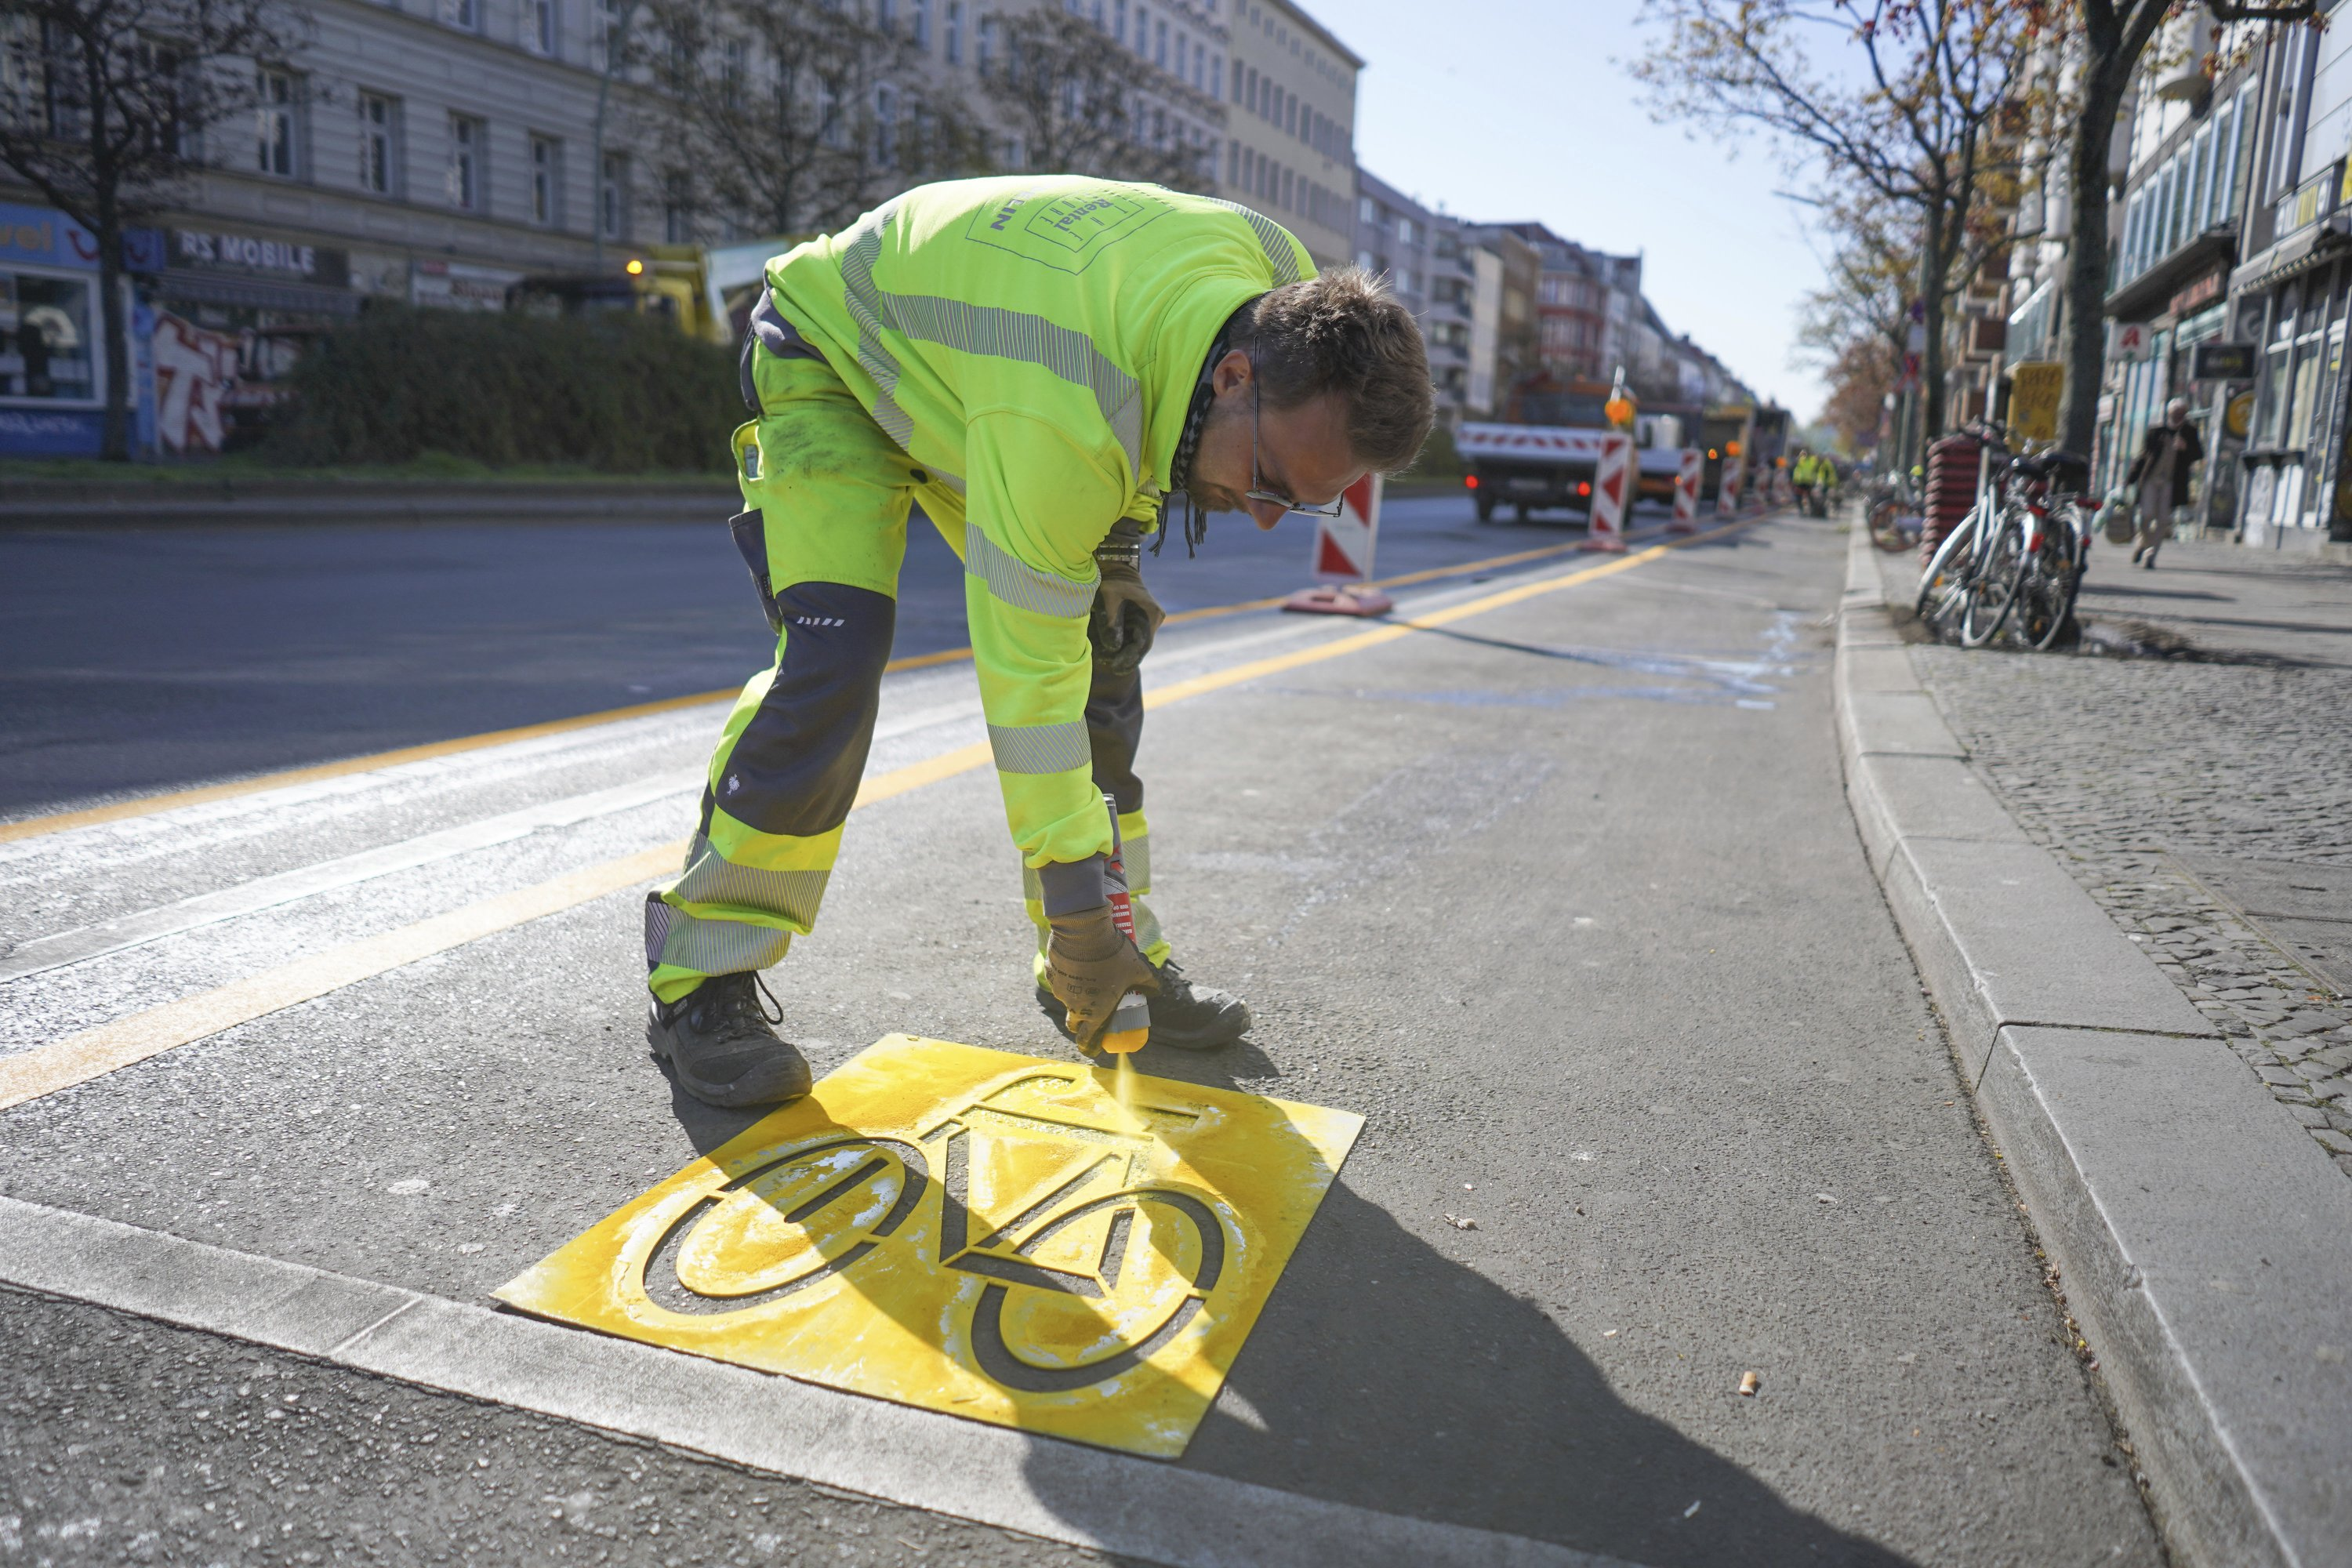 Berlin gets 'pop-up' bike lanes to boost cycling in pandemic